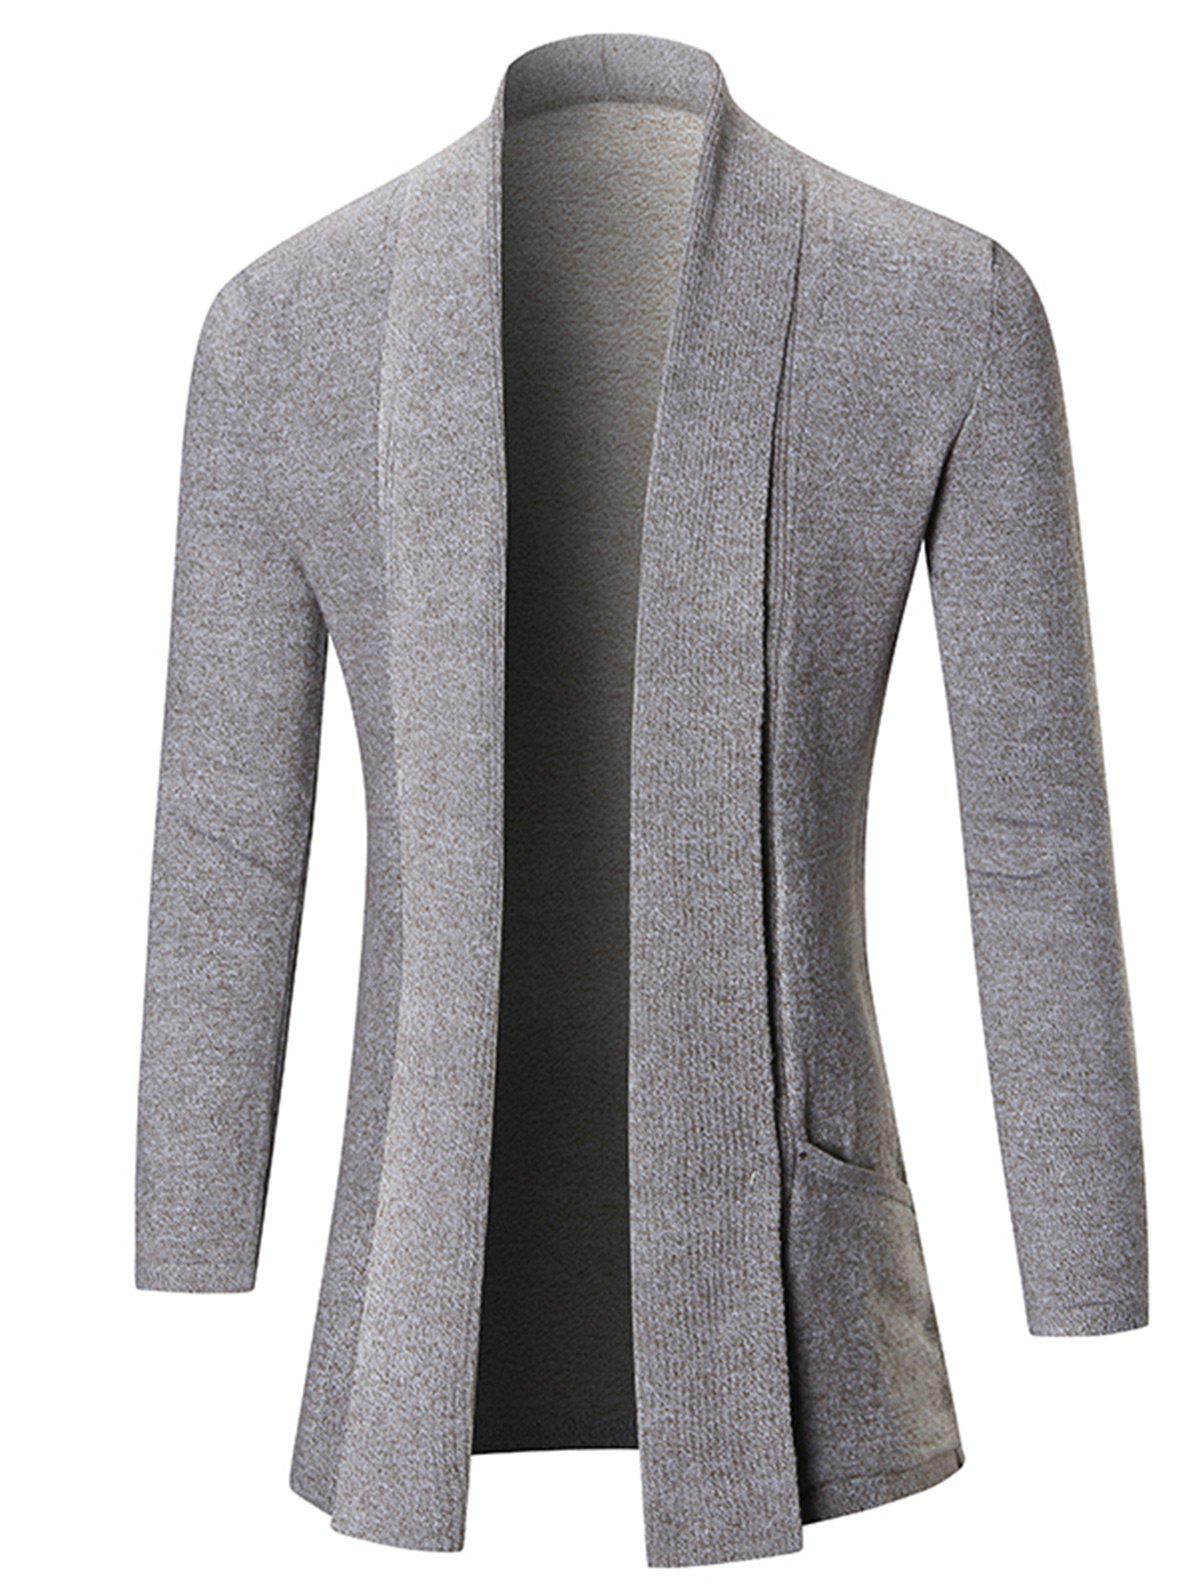 Heathered Shawl Collar Open Front Cardigan intex 134501